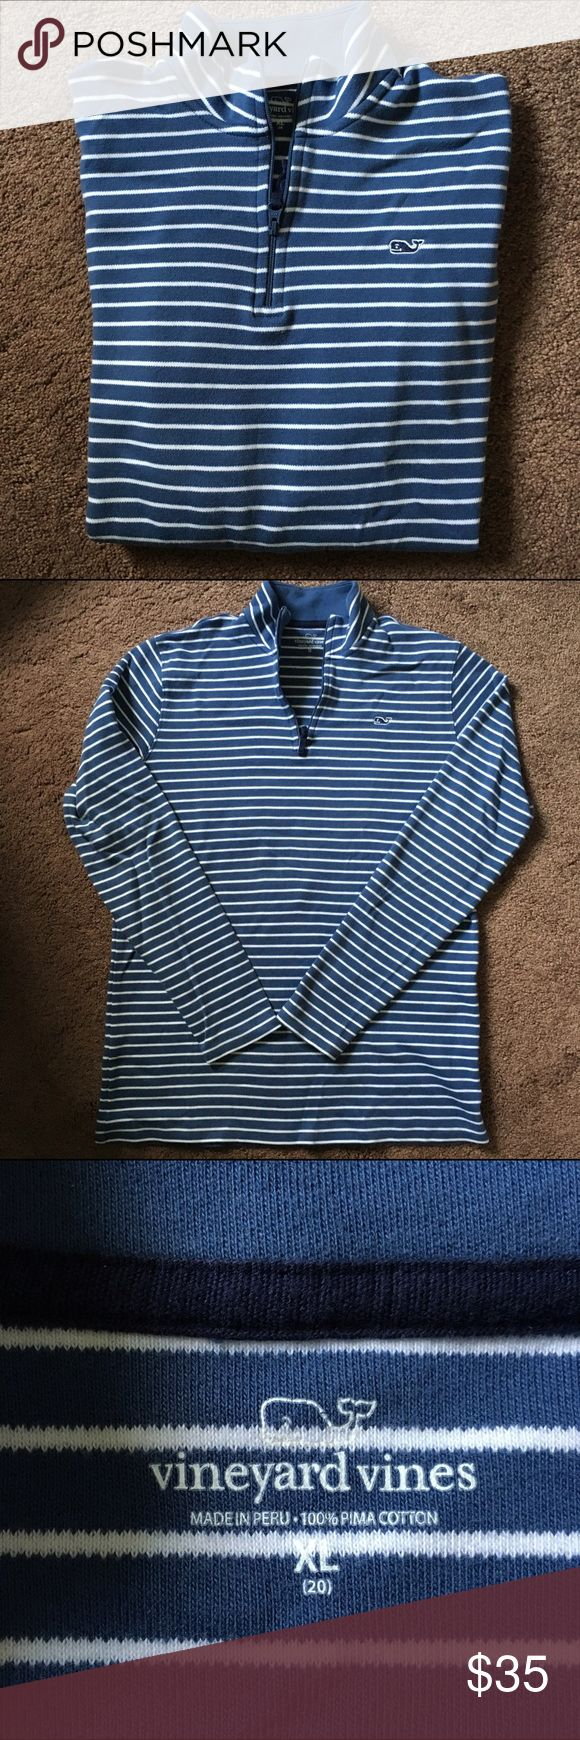 Vineyard Vines ¼ Zip Shep Shirt Super comfy, cute, and nautical blue and white striped quarter zip. Never warn. -BOYS XL- Also fits women's XS and S. Very flattering. Vineyard Vines Tops Sweatshirts & Hoodies